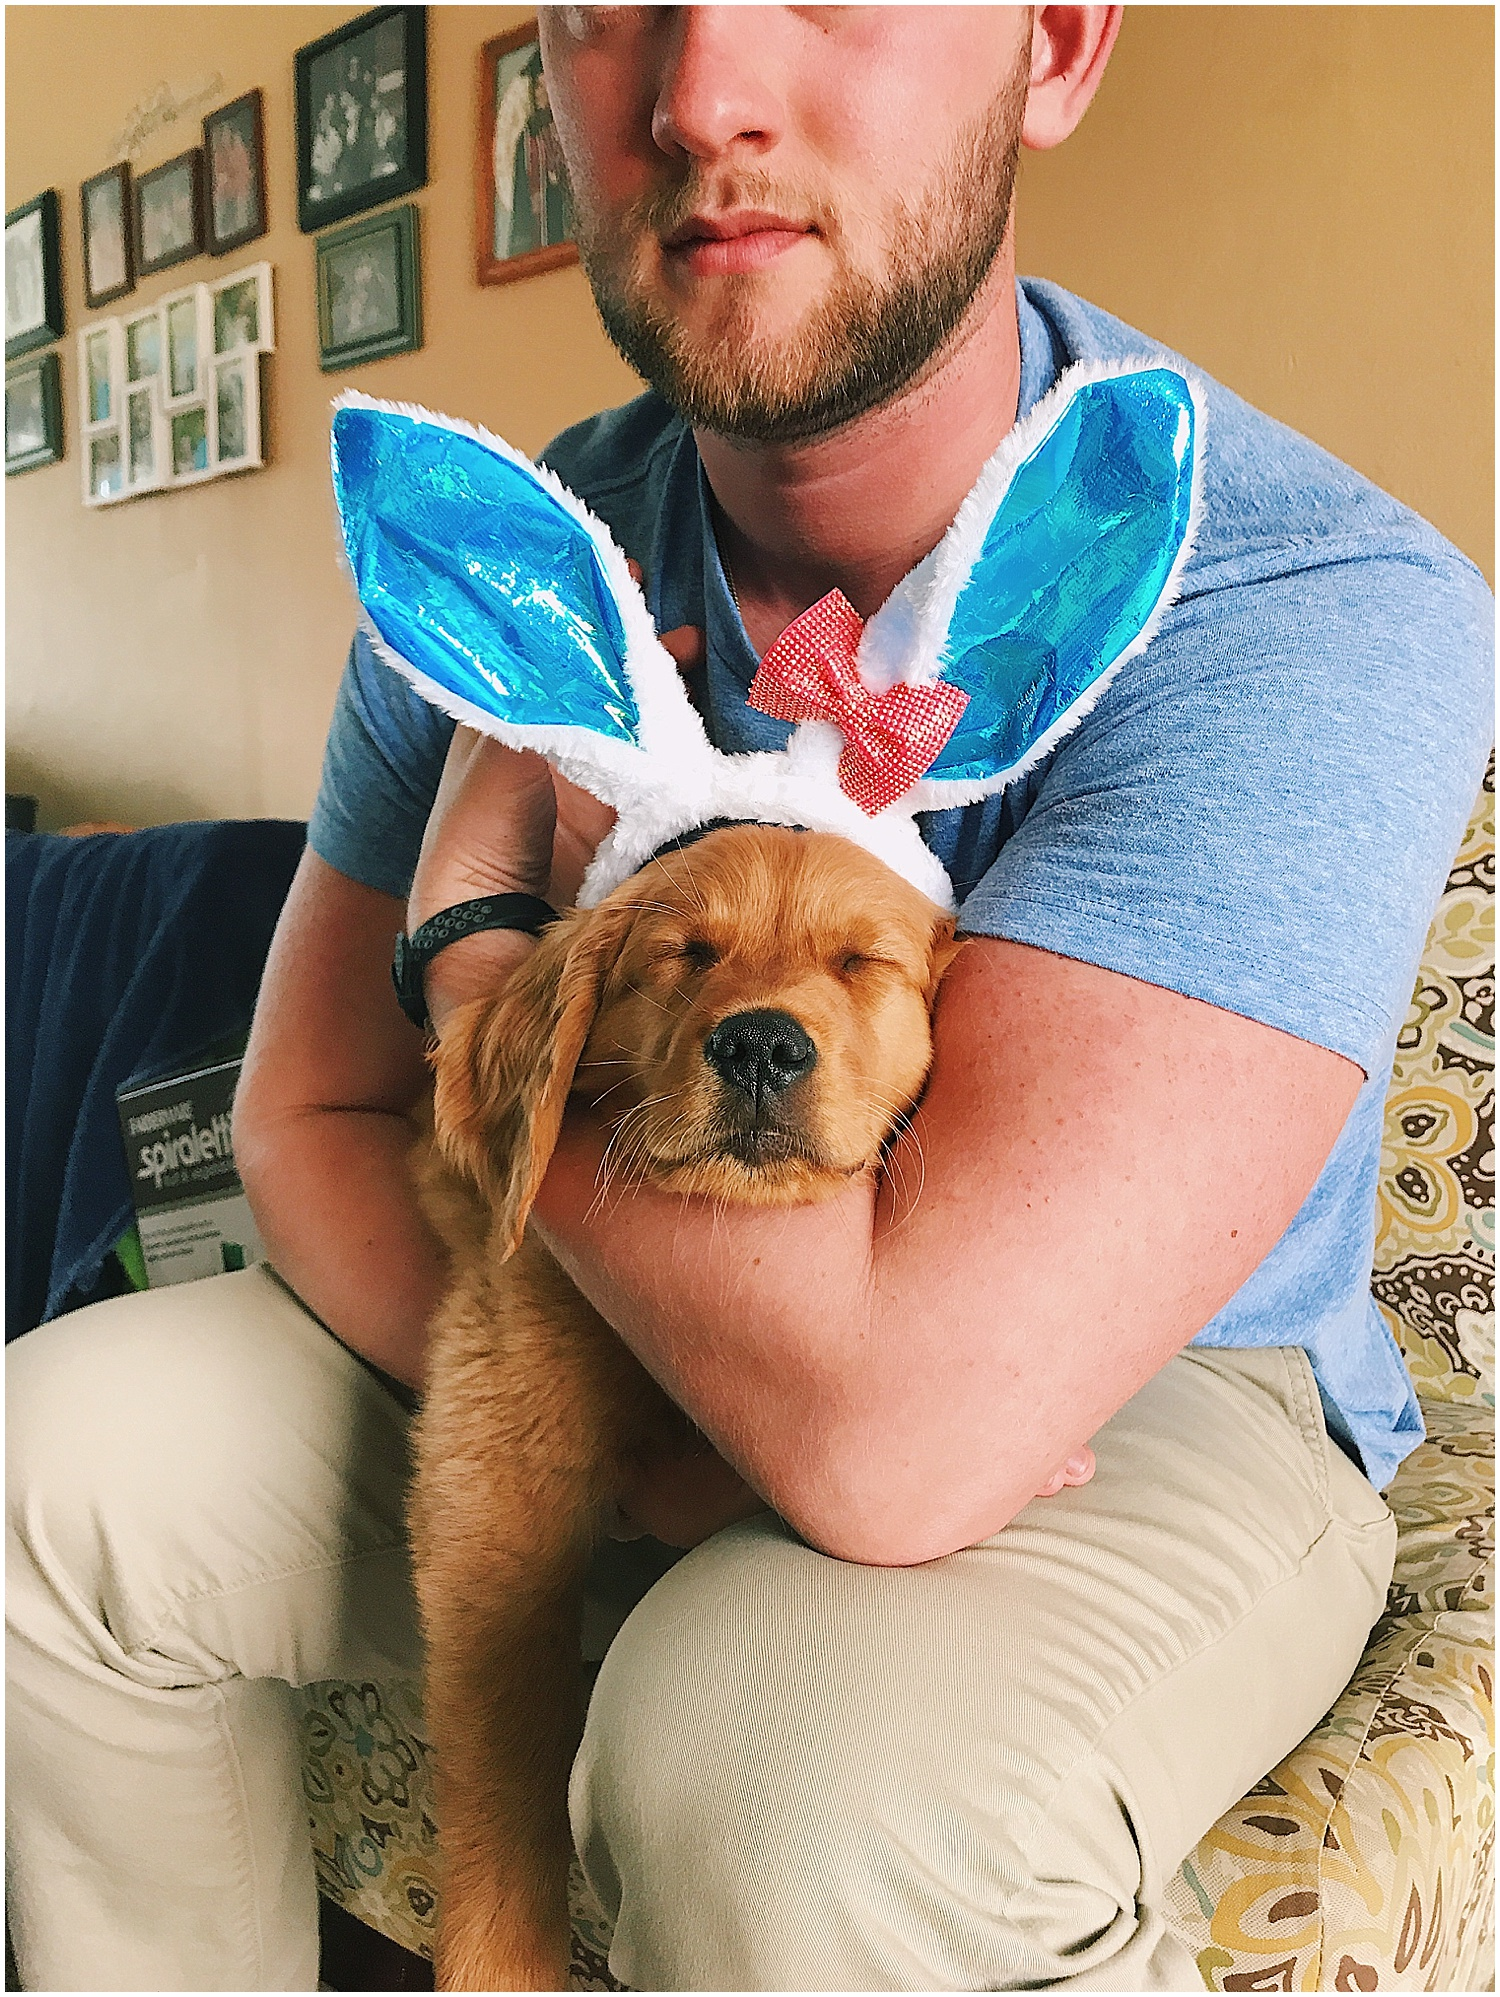 at the start of april was easter, dodger was thrilled